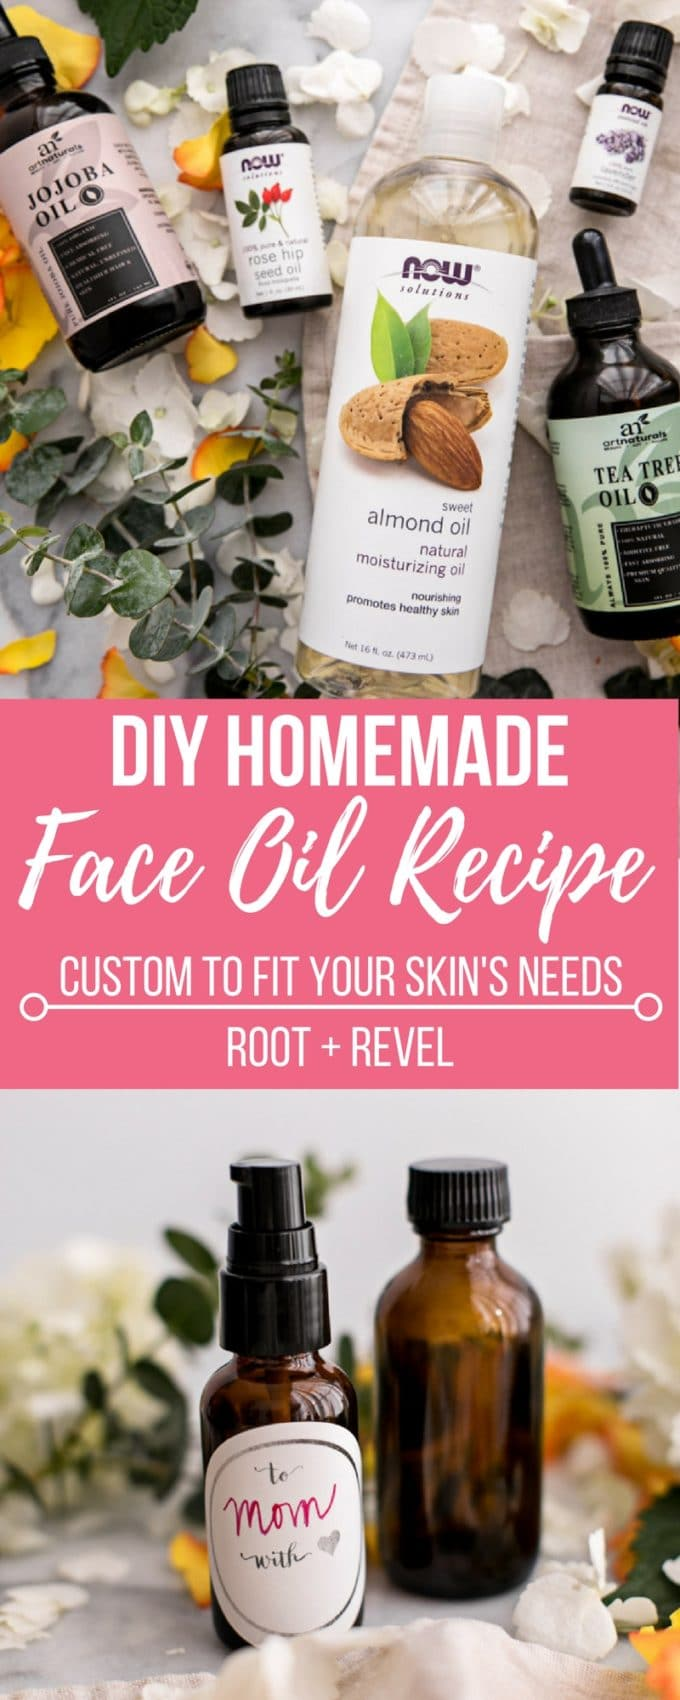 Custom DIY Homemade Face Oil Recipe #homemadefacelotion